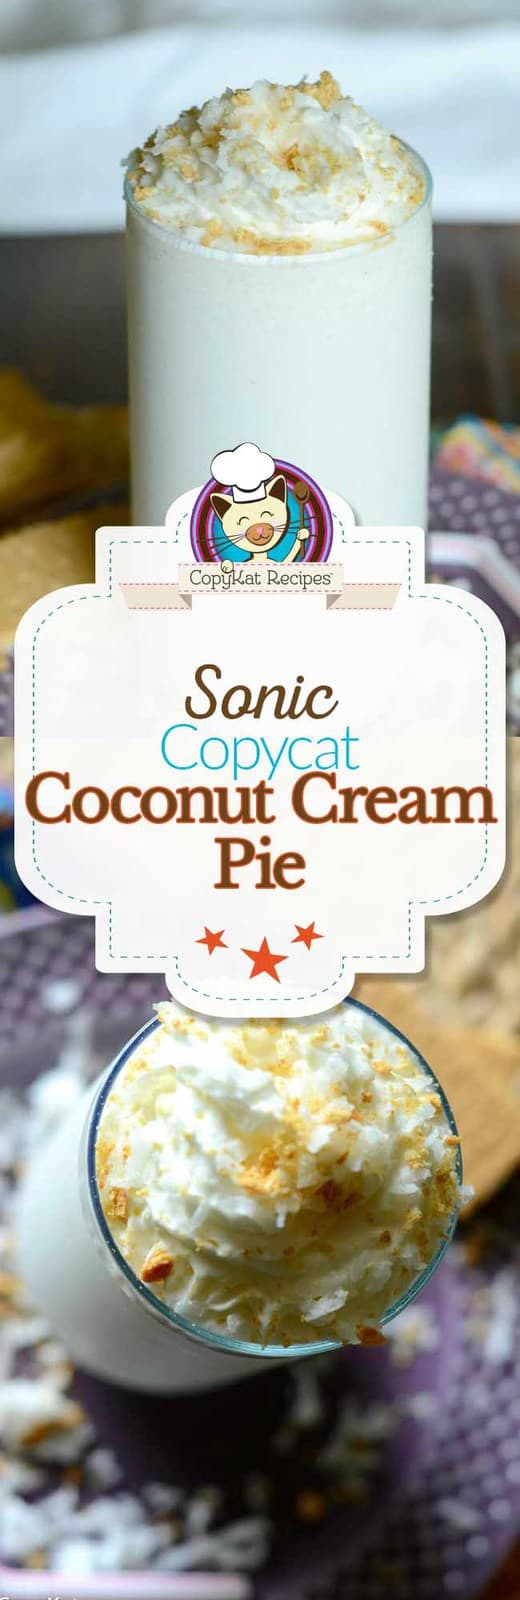 You can recreate a wonderful recipe for Sonic Coconut Cream Pie shake at home.